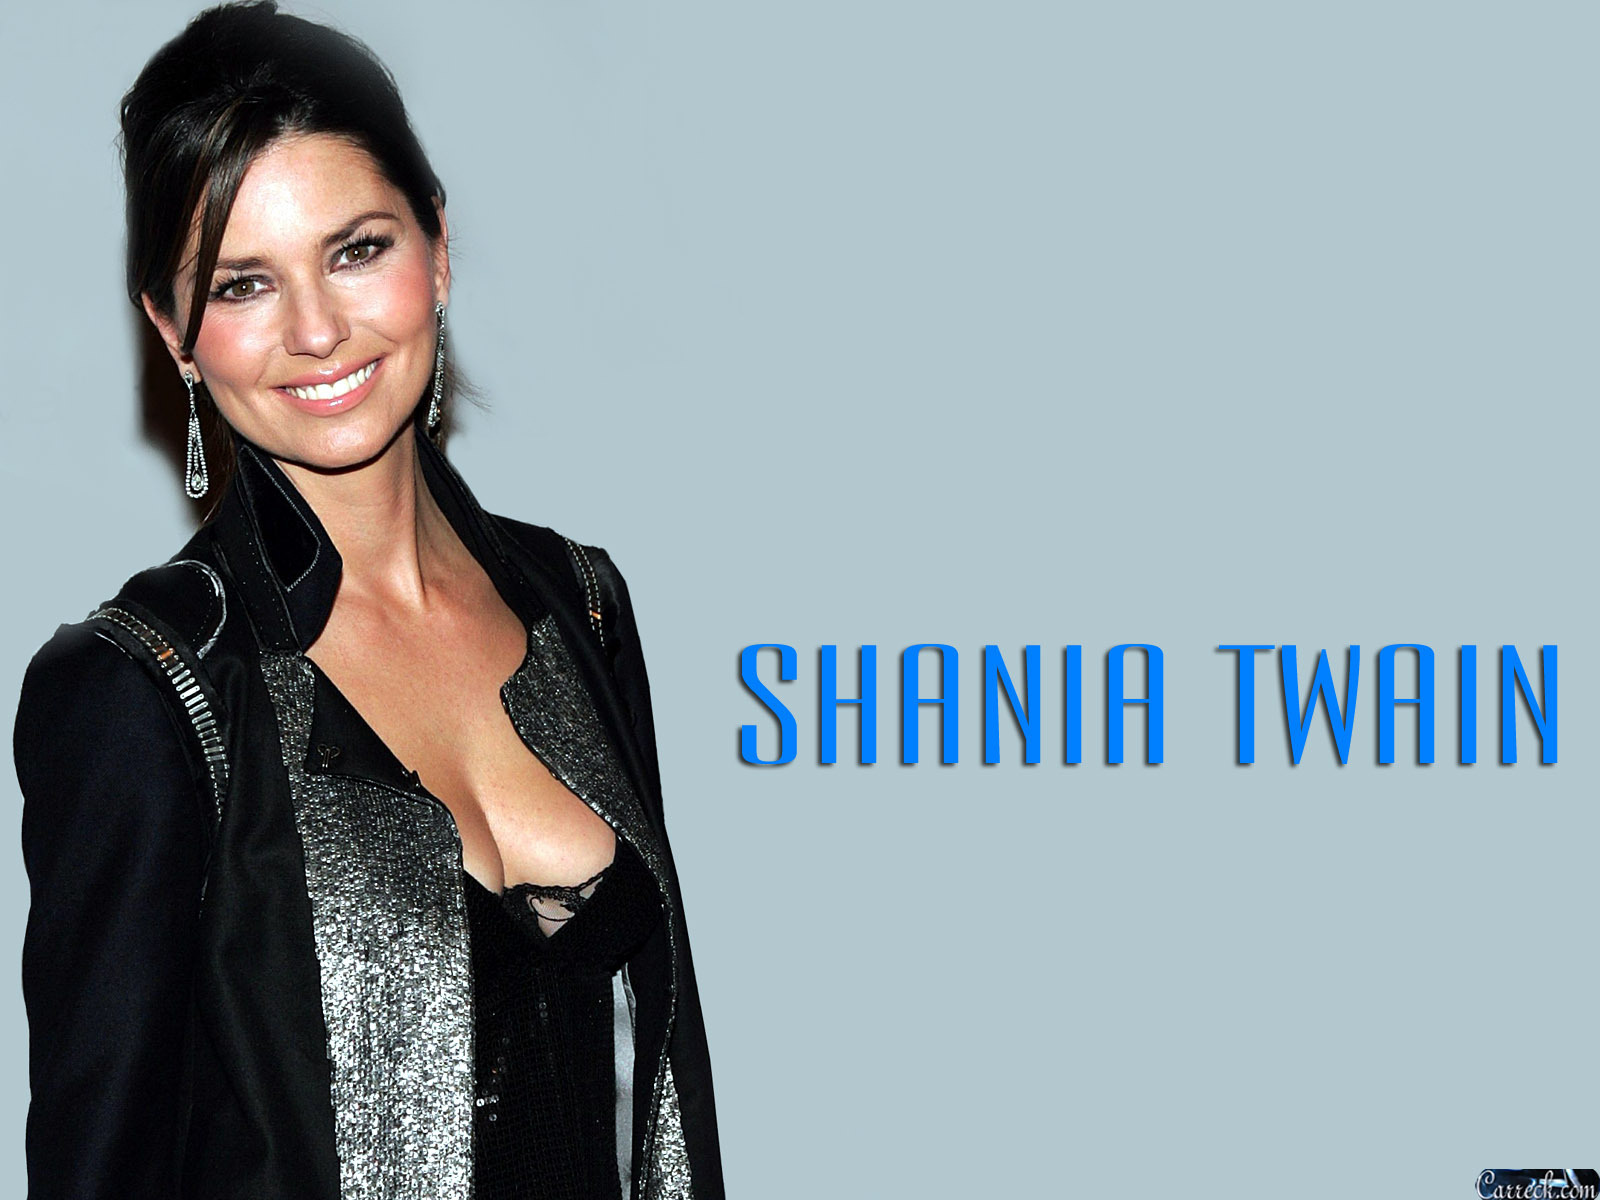 Shania Twain images Shania Twain wallpaper photos 20894900 1600x1200